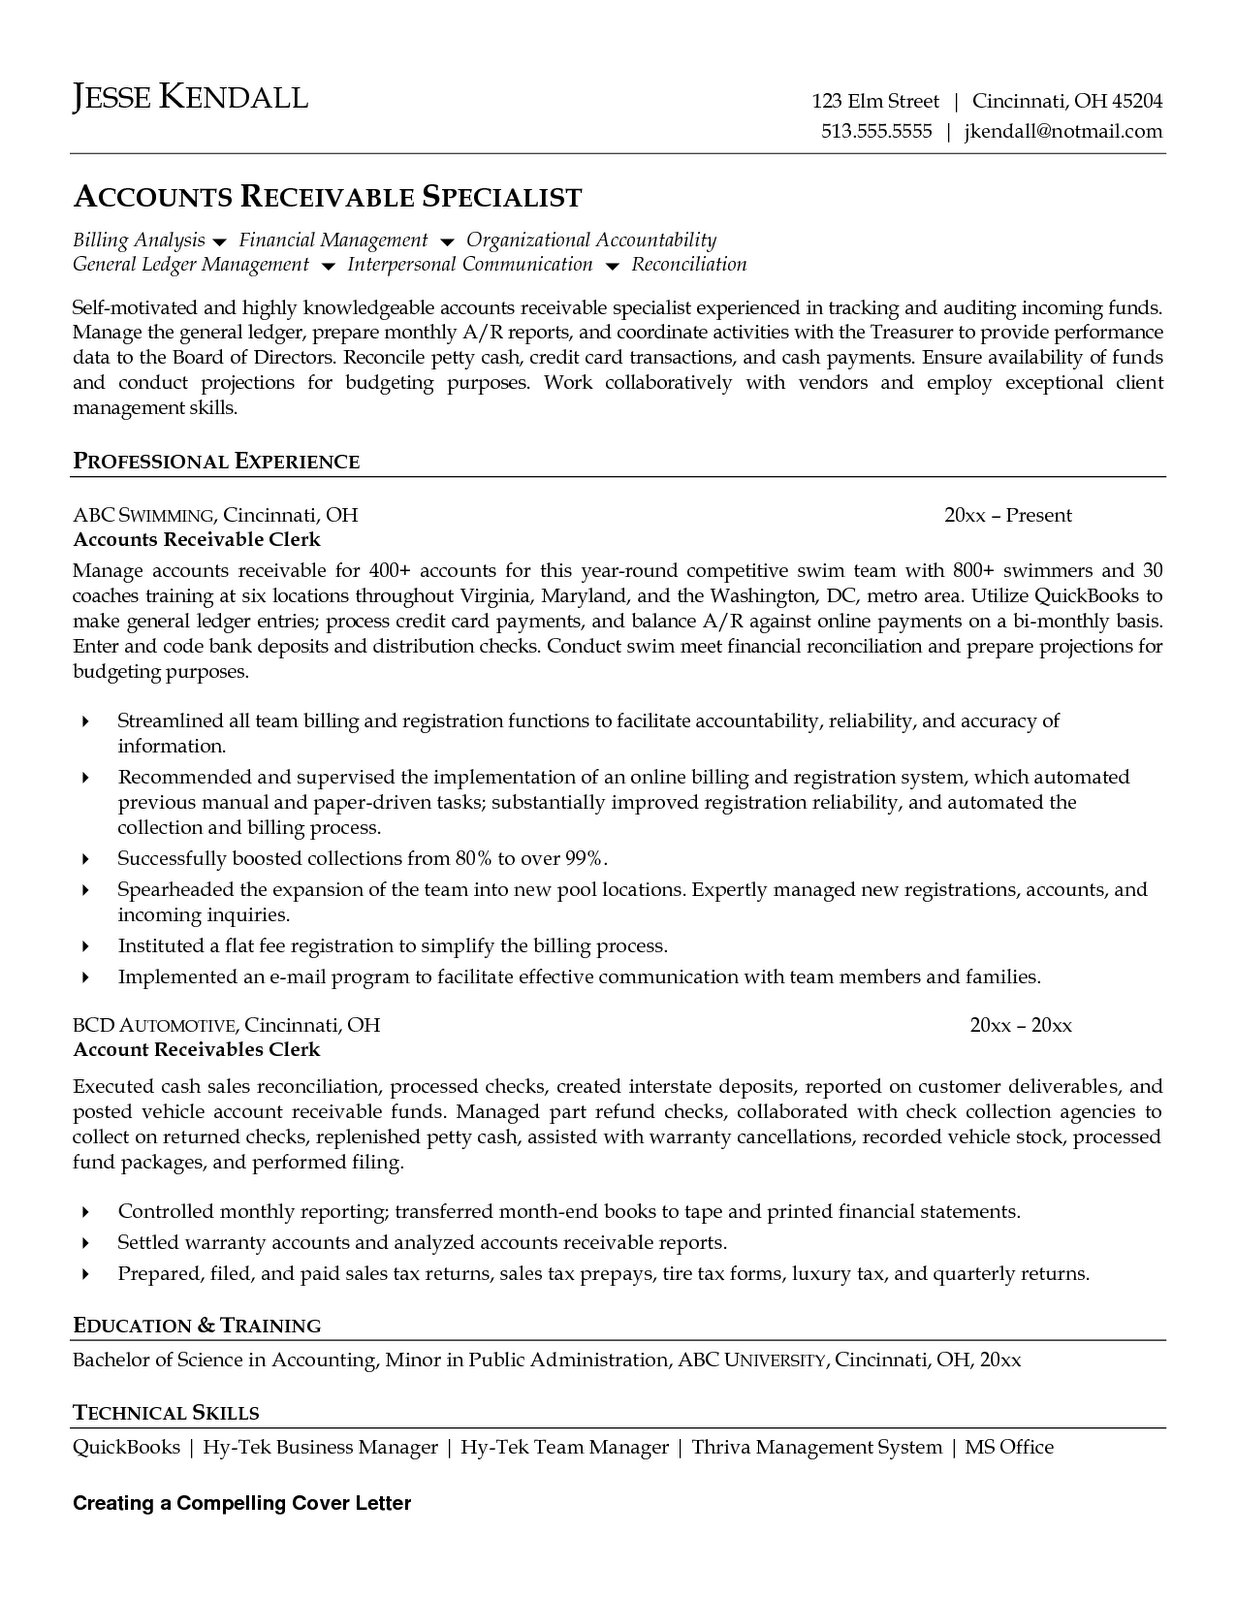 Resume And Cover Letter Writing Rubric. How To Write The Best Resume And  Cover Letters  Resume Rubric